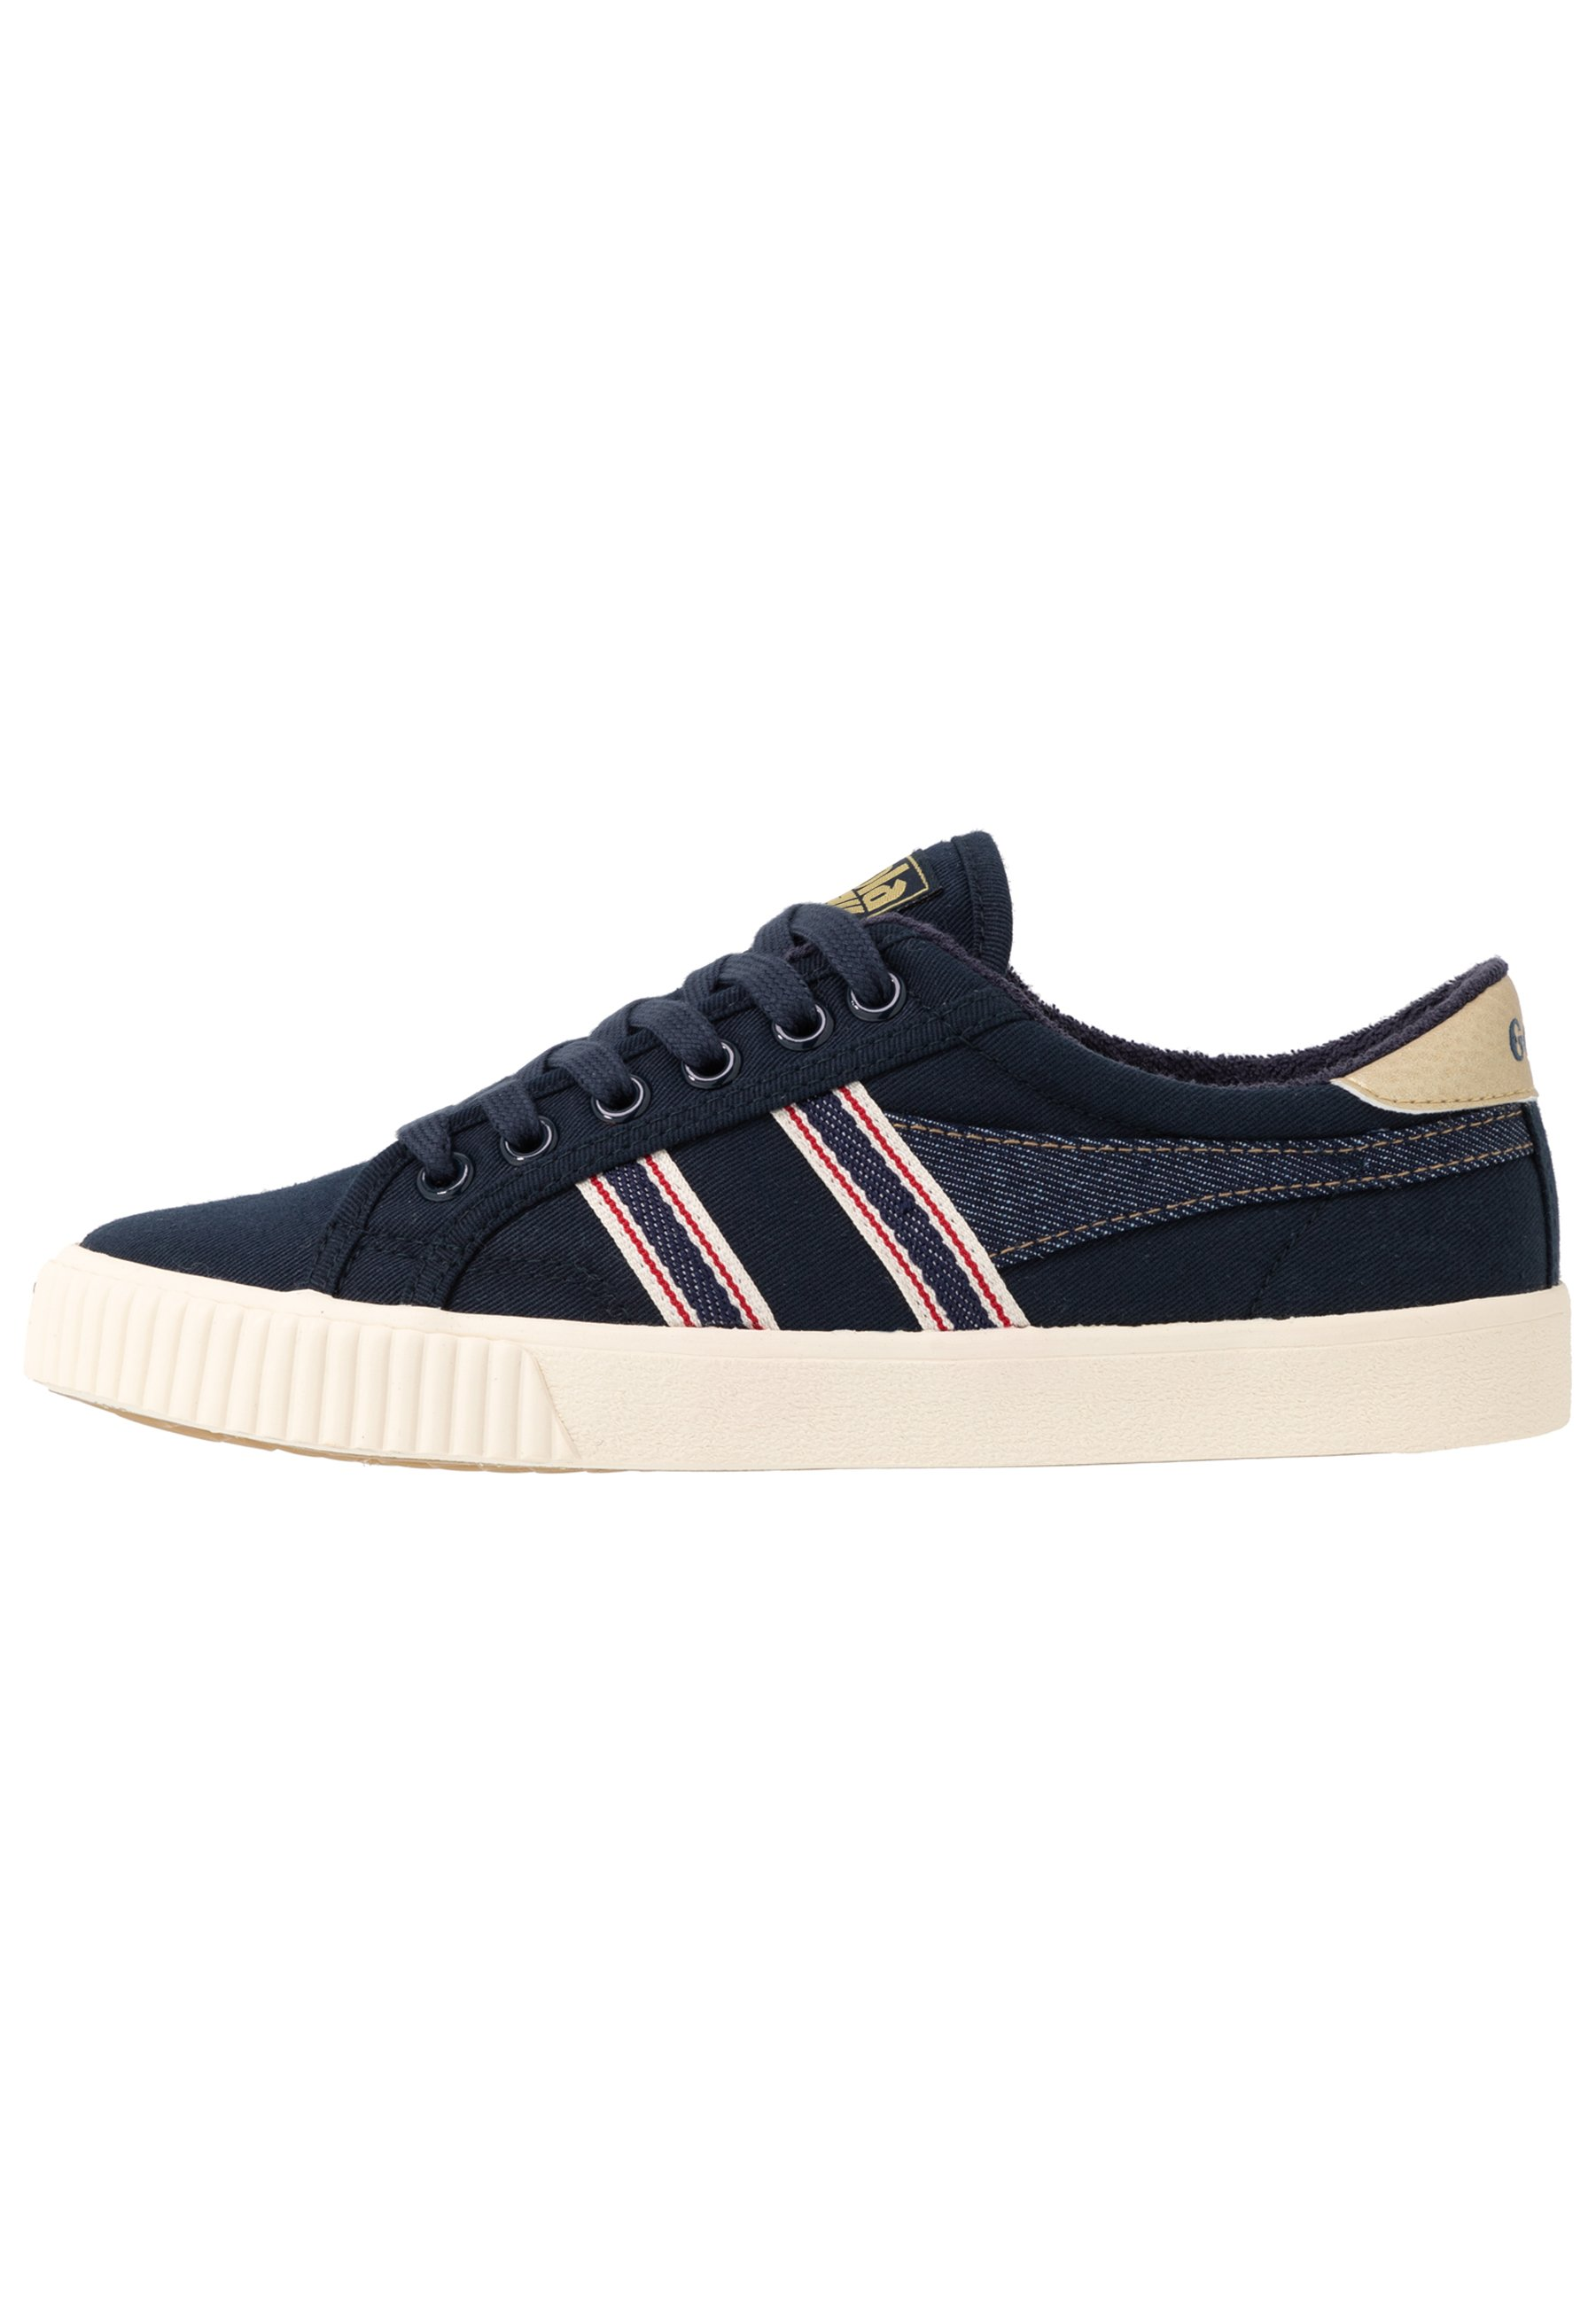 Gola TENNIS MARK COX SELVEDGE - Sneakersy niskie - navy/indigo